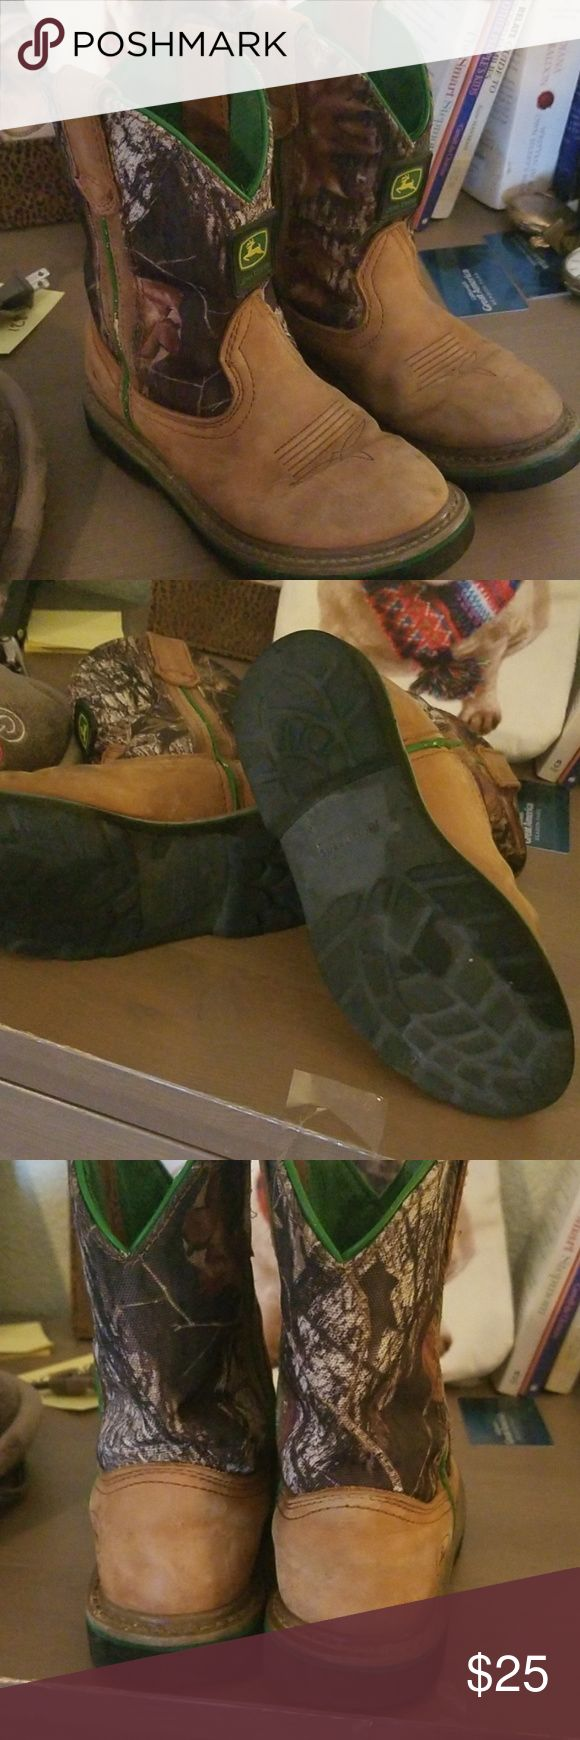 John Deere boots Great condition Worn Awesome boots John Deere Shoes Boots